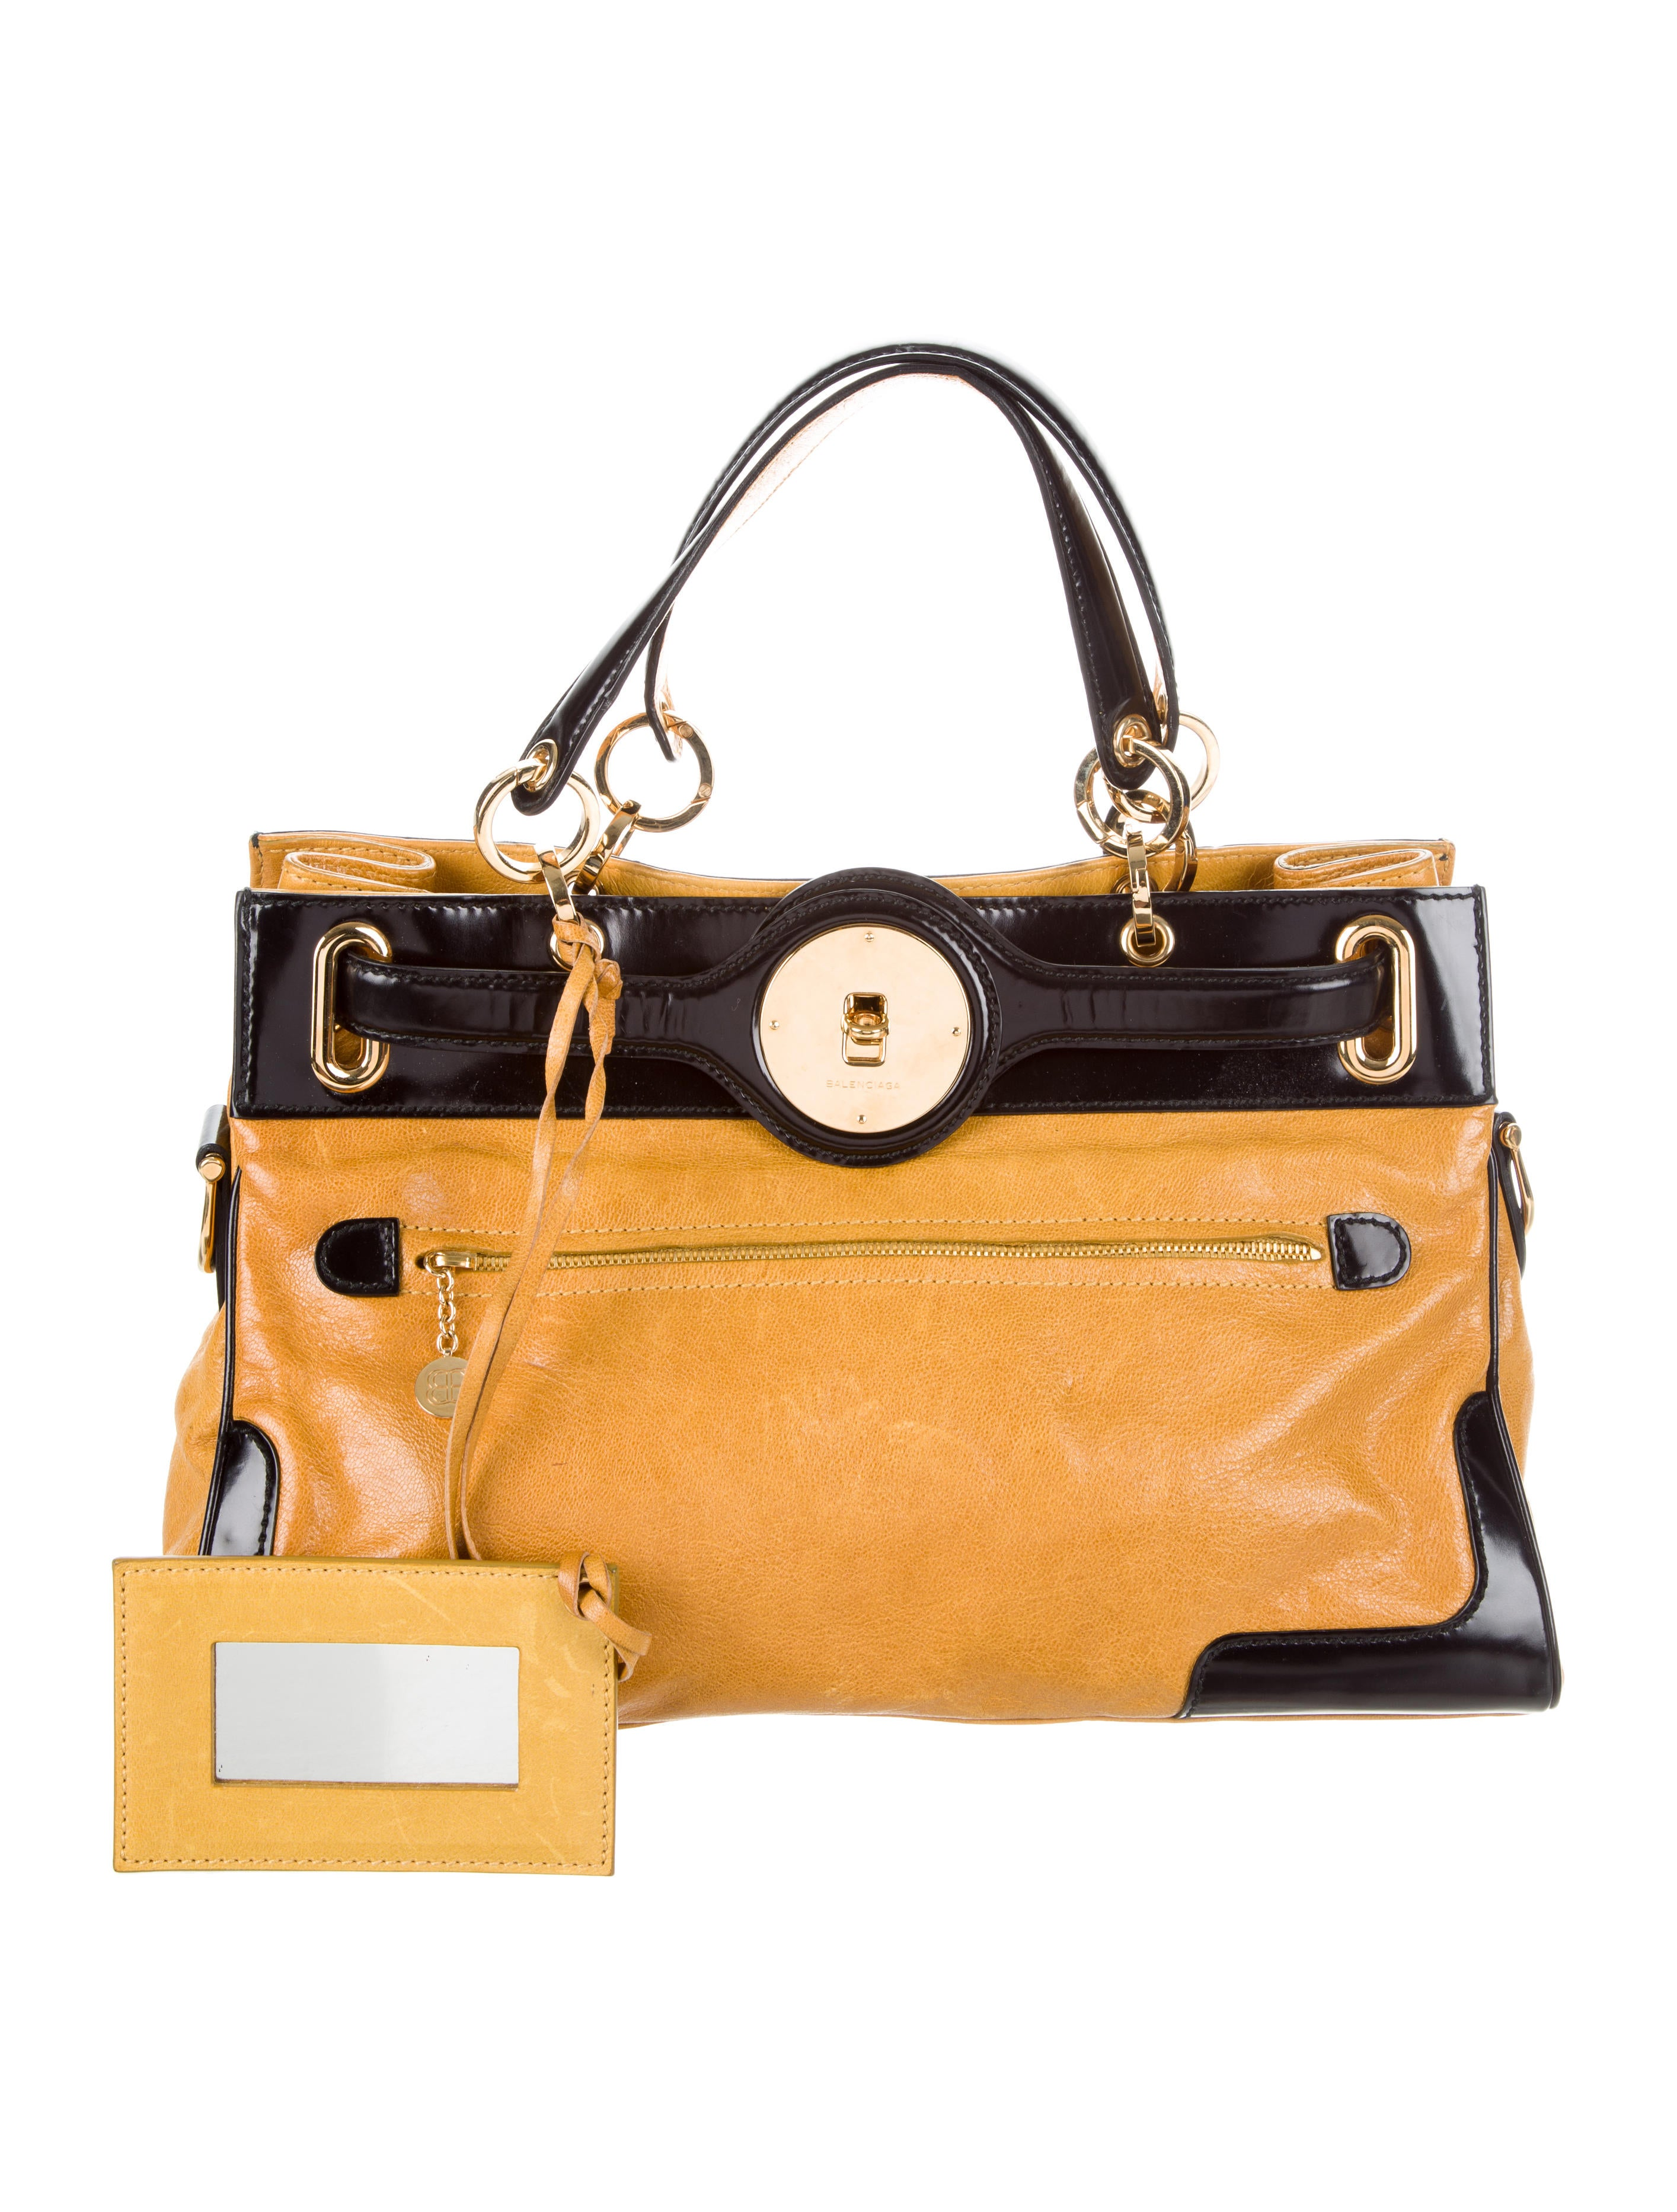 3610eac6772f Balenciaga Handbags Vintage   Stanford Center for Opportunity Policy ...